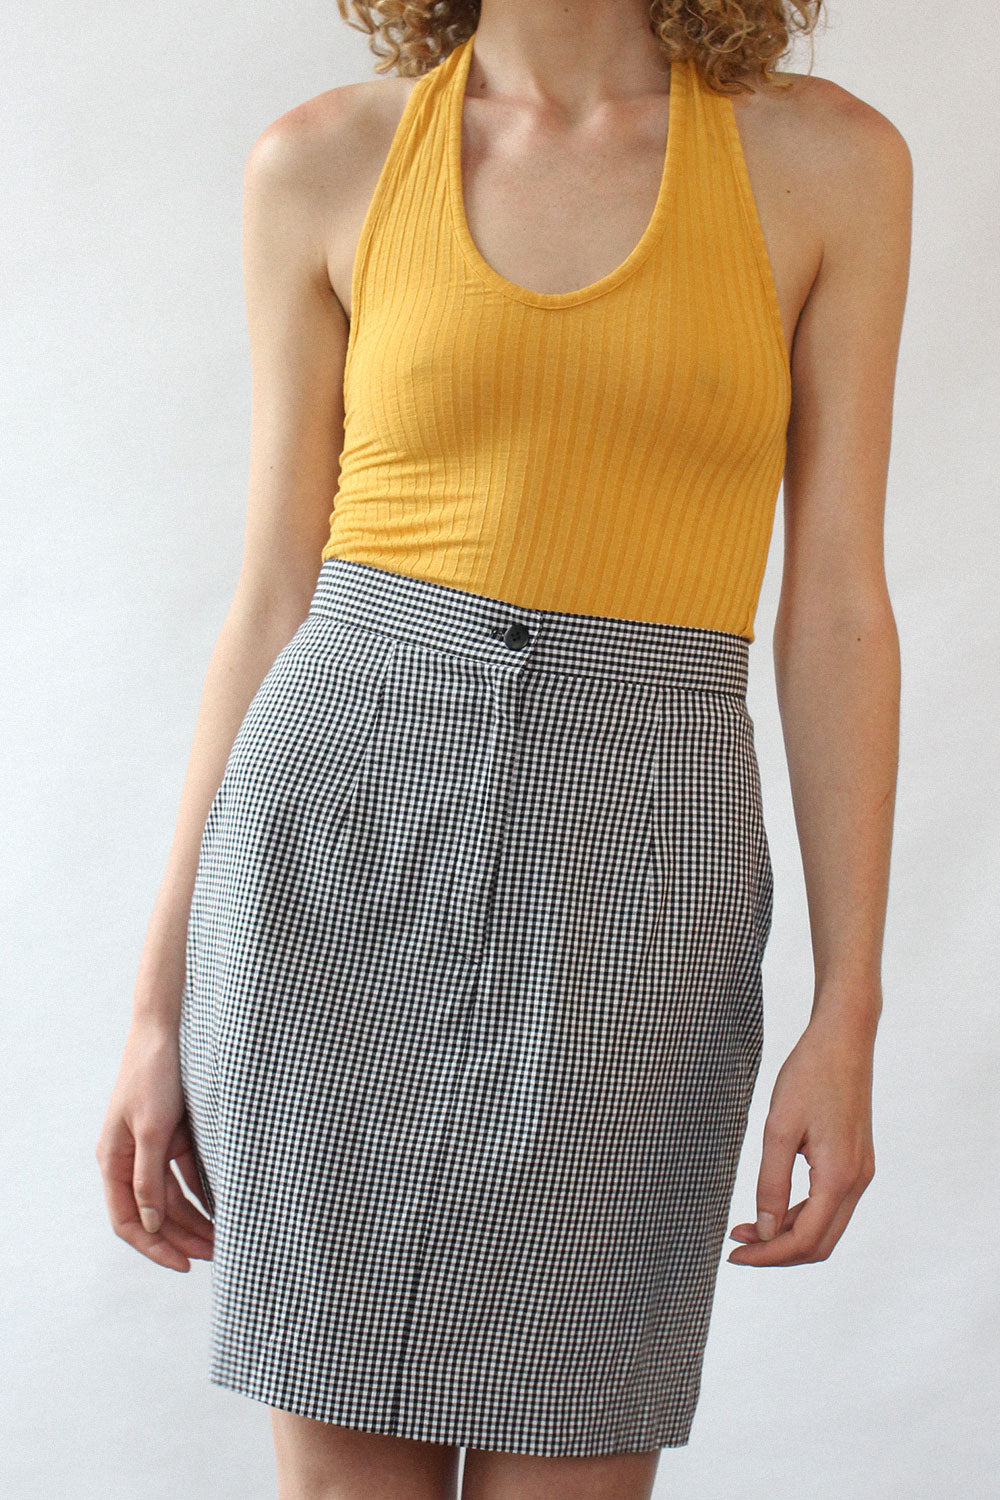 Gingham Straight Skirt S